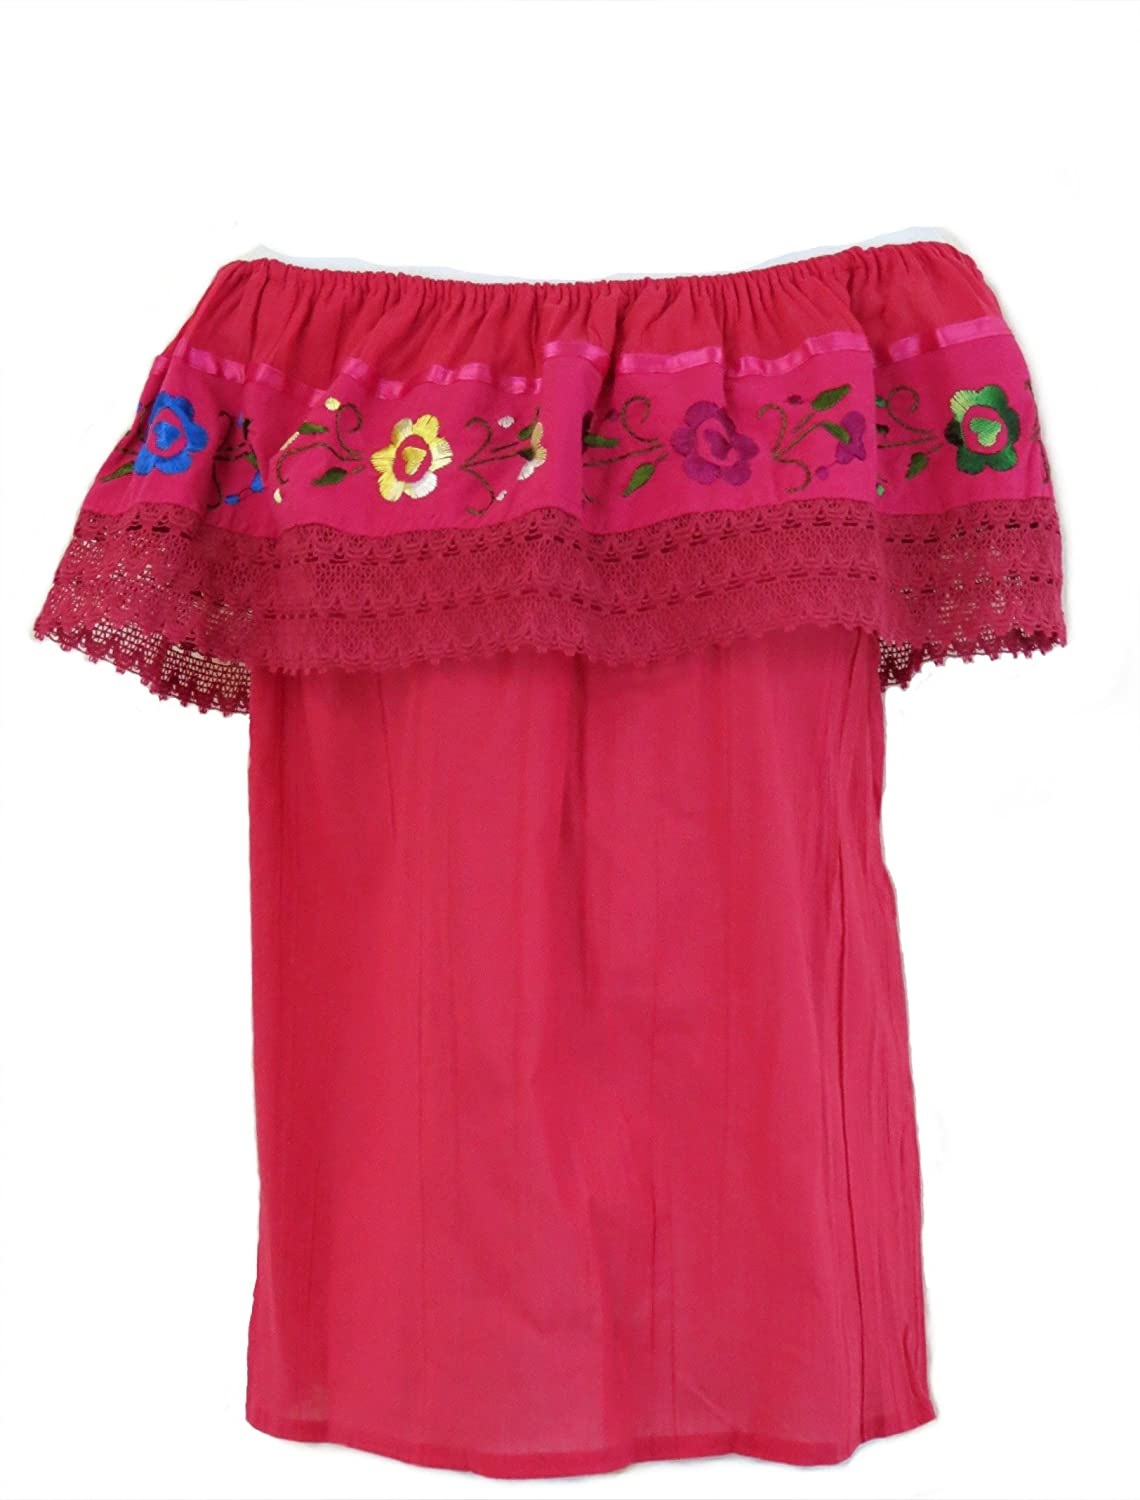 Women's Embroidered Crochet Off-Shoulder Magenta Mexican Top - DeluxeAdultCostumes.com